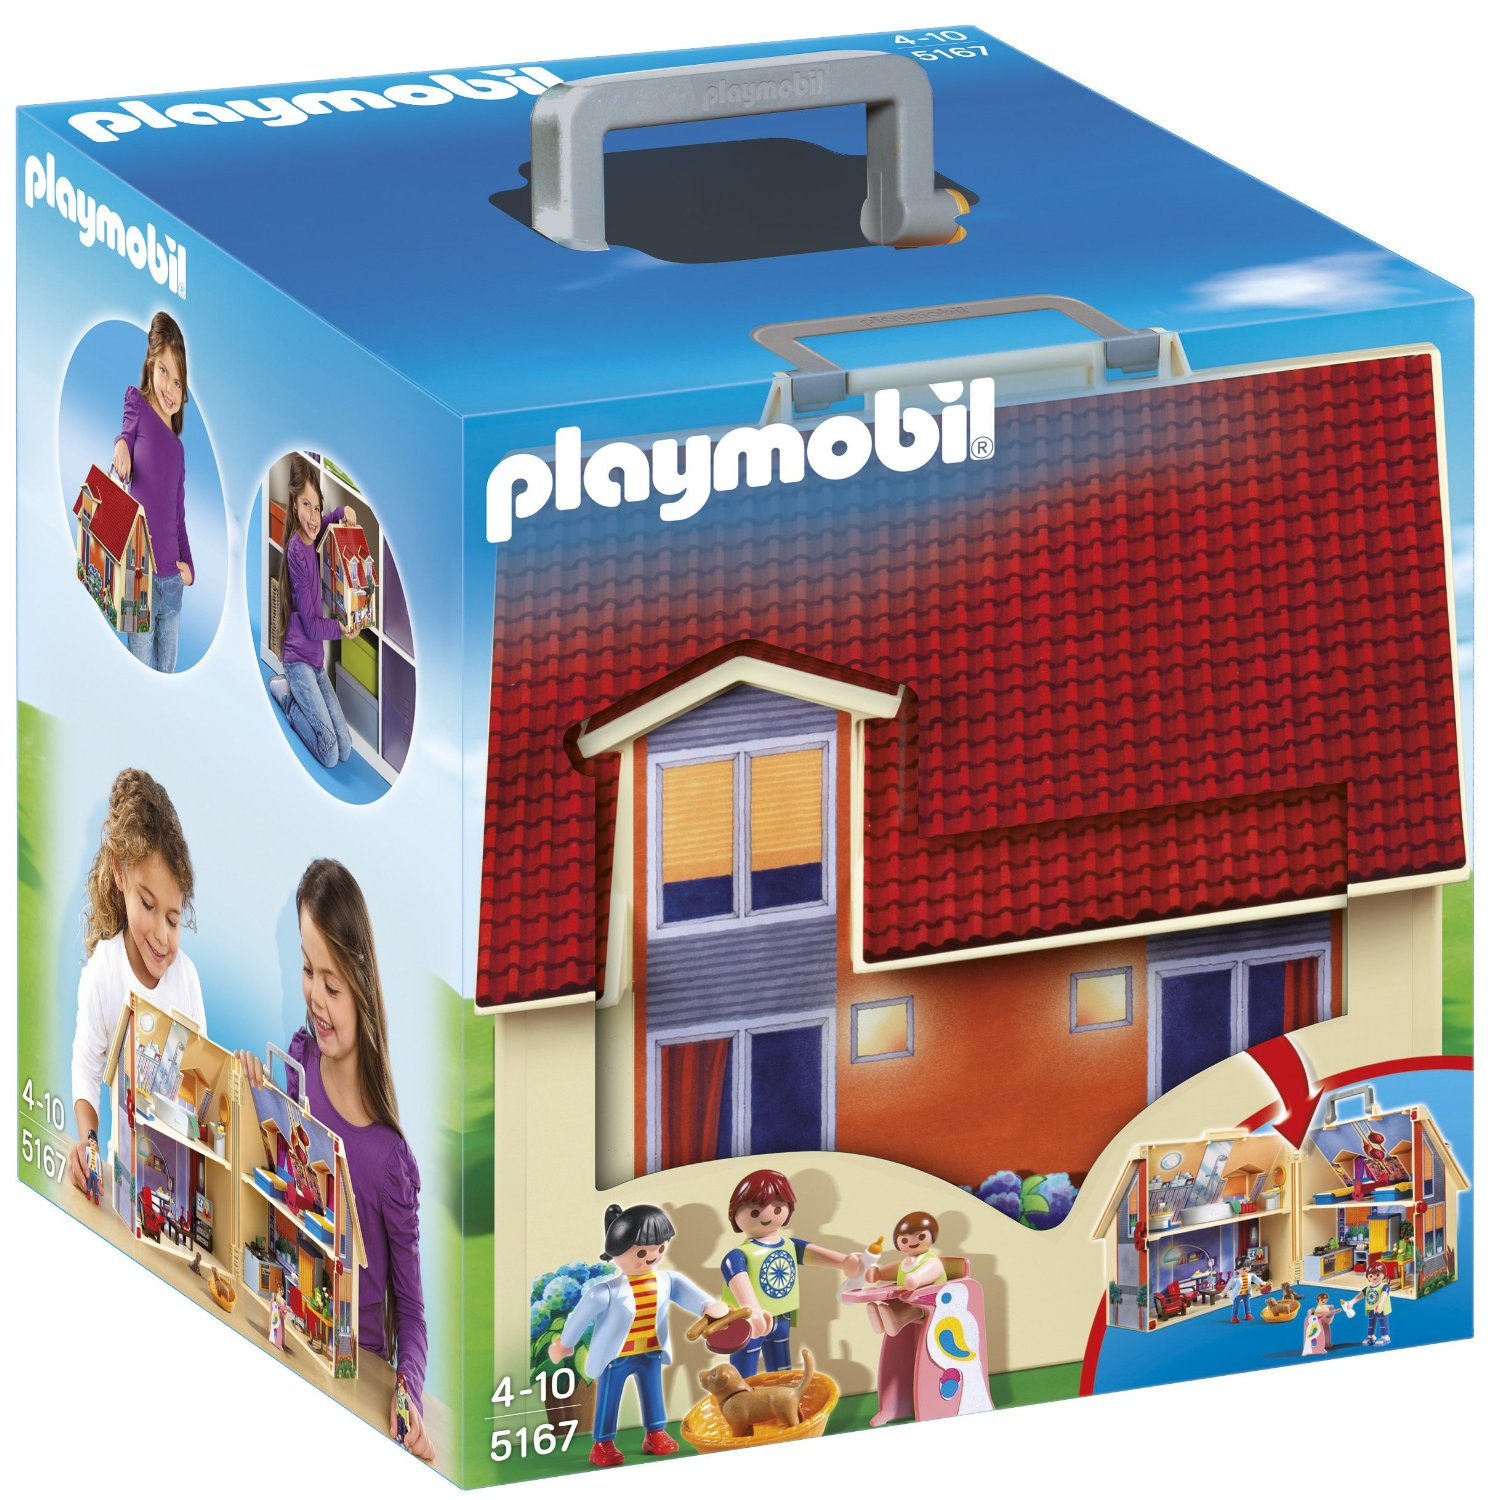 jeu de construction playmobil maison transportable jeu. Black Bedroom Furniture Sets. Home Design Ideas